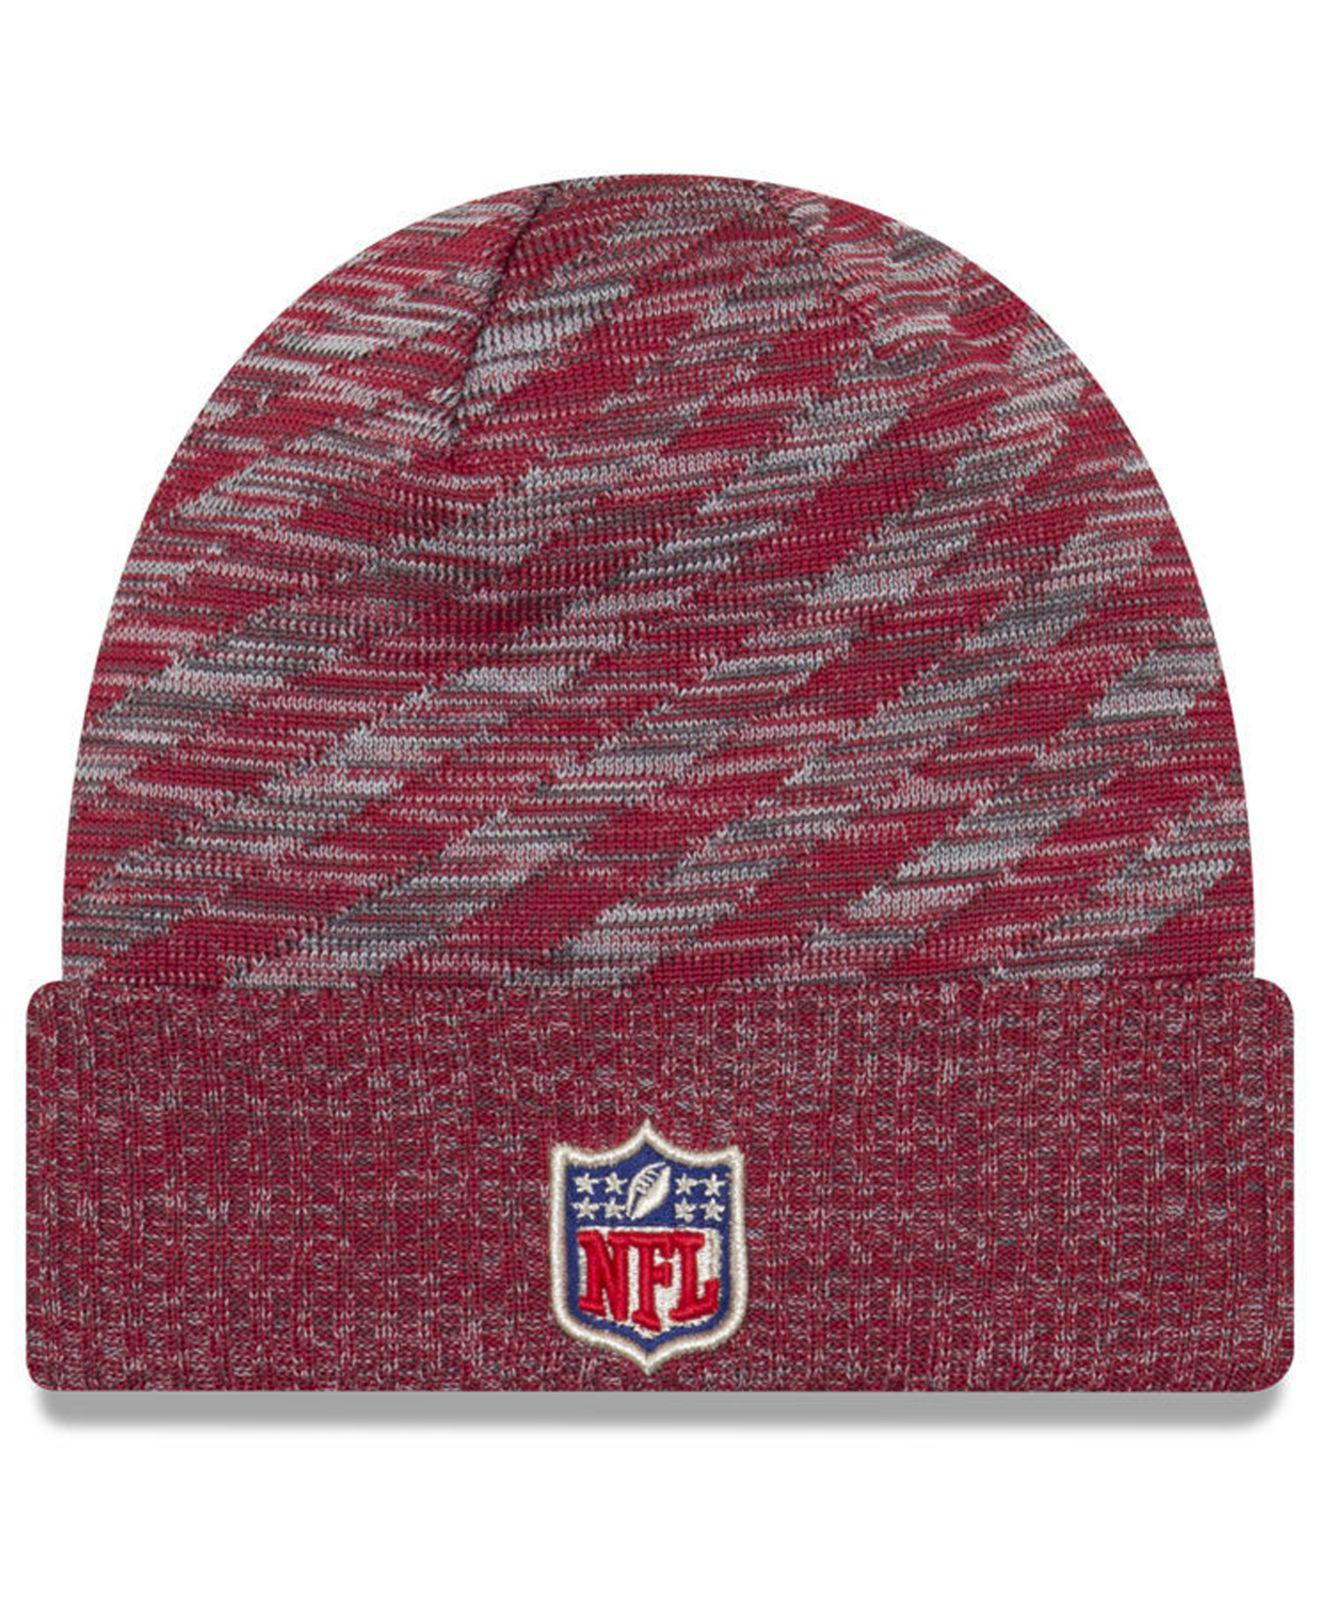 Lyst - Ktz Arizona Cardinals Touch Down Knit Hat in Red for Men 0018c291b499